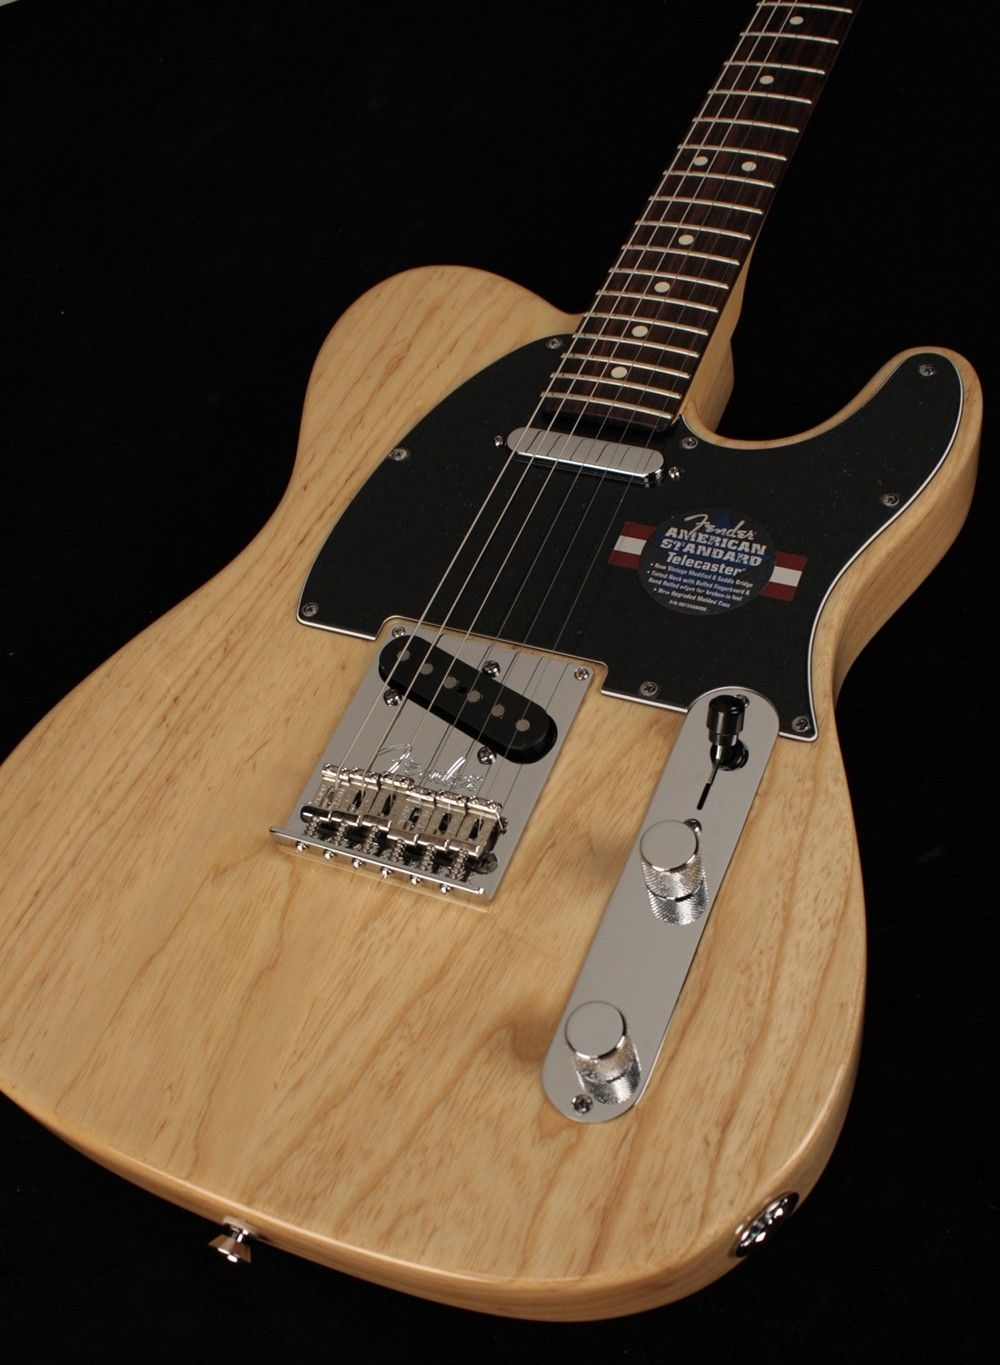 Fender American Standard Telecaster Natural Rw Guitars Guitar On Pinterest Steampunk And Epiphone